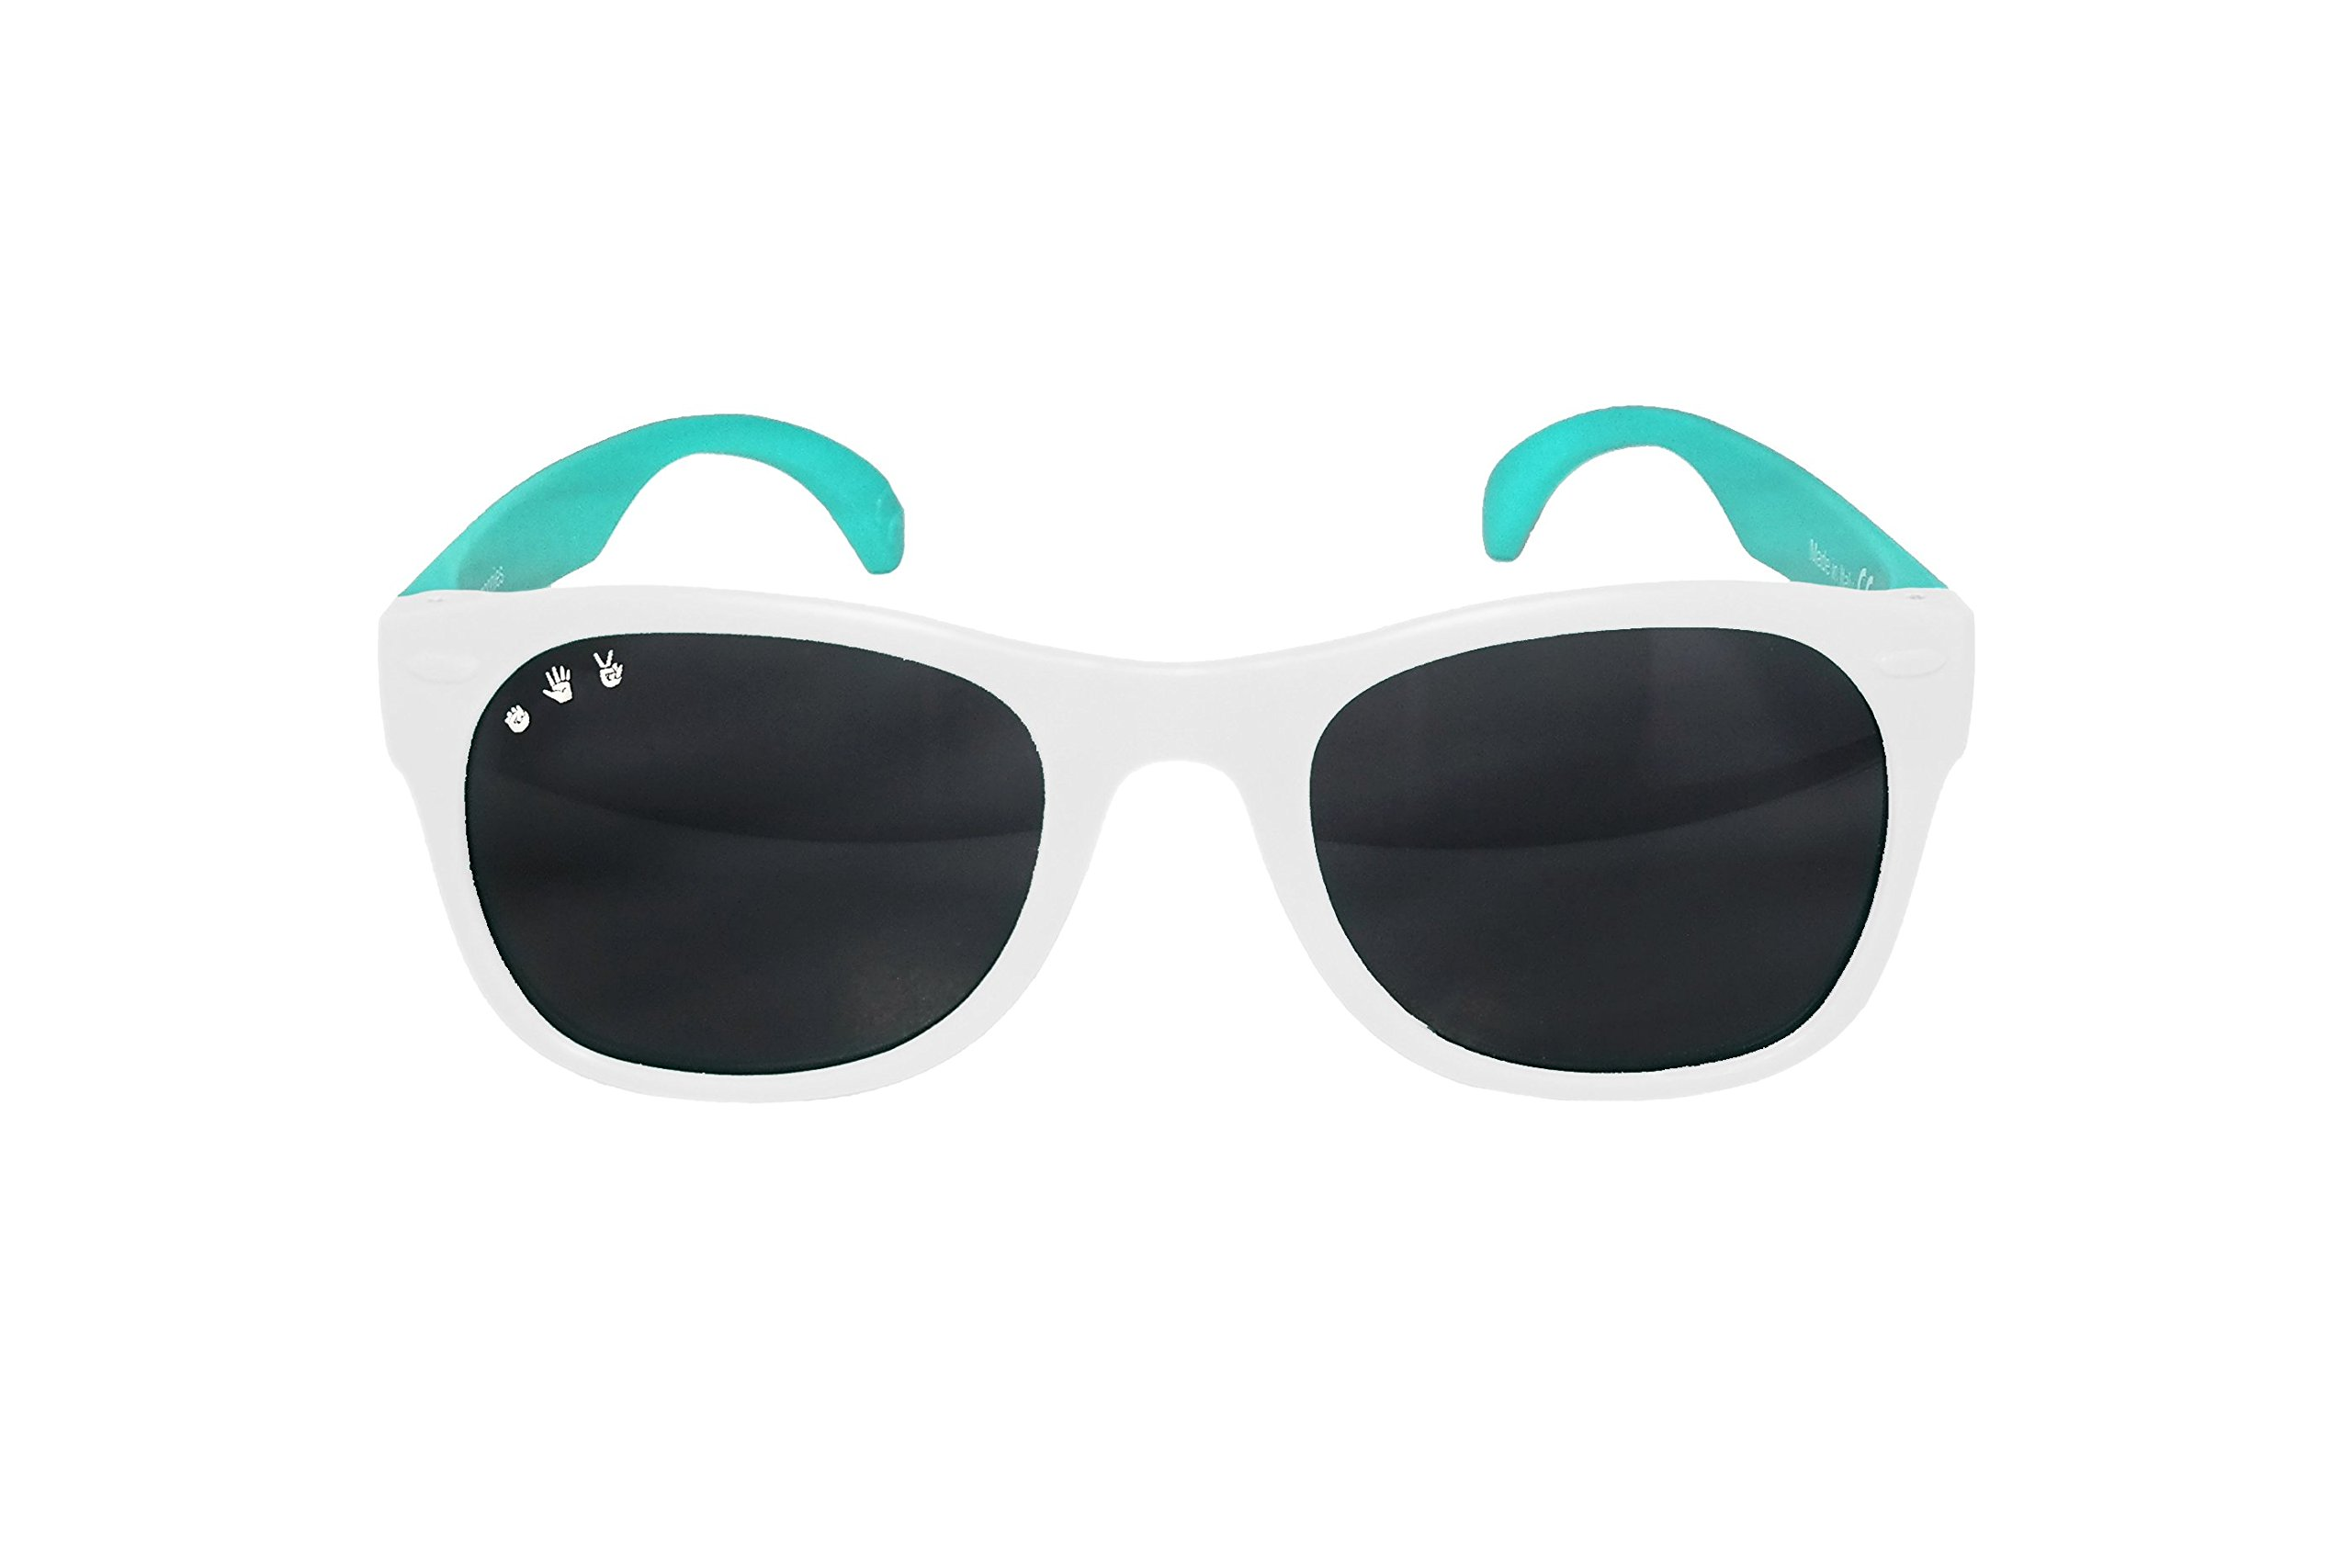 Roshambo Junior Shades, 90210 (Teal/White) by Roshambo Baby (Image #4)